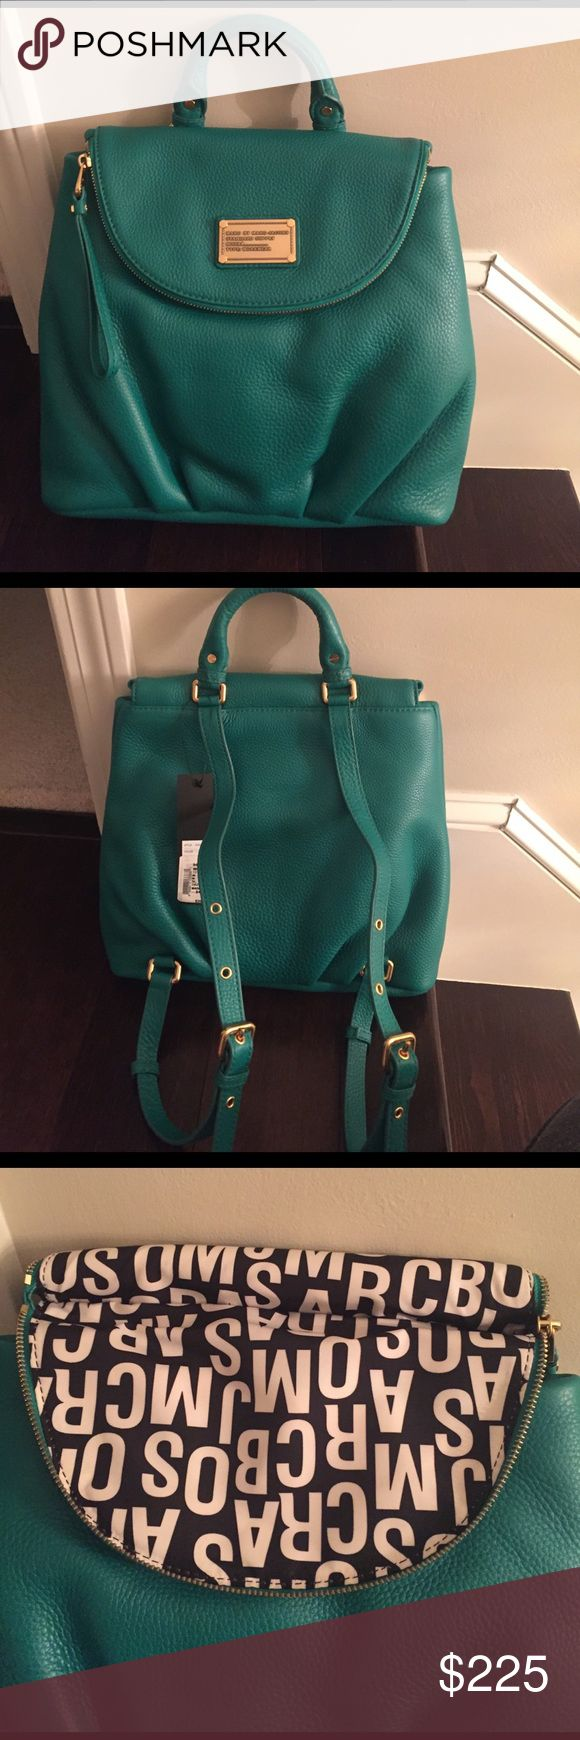 Marc by Marc Jacobs Emerald Green Backpack Marc by Marc Jacobs Emerald Green Backpack. Brand New, never used. Comes with original dust bag. Marc by Marc Jacobs Bags Backpacks